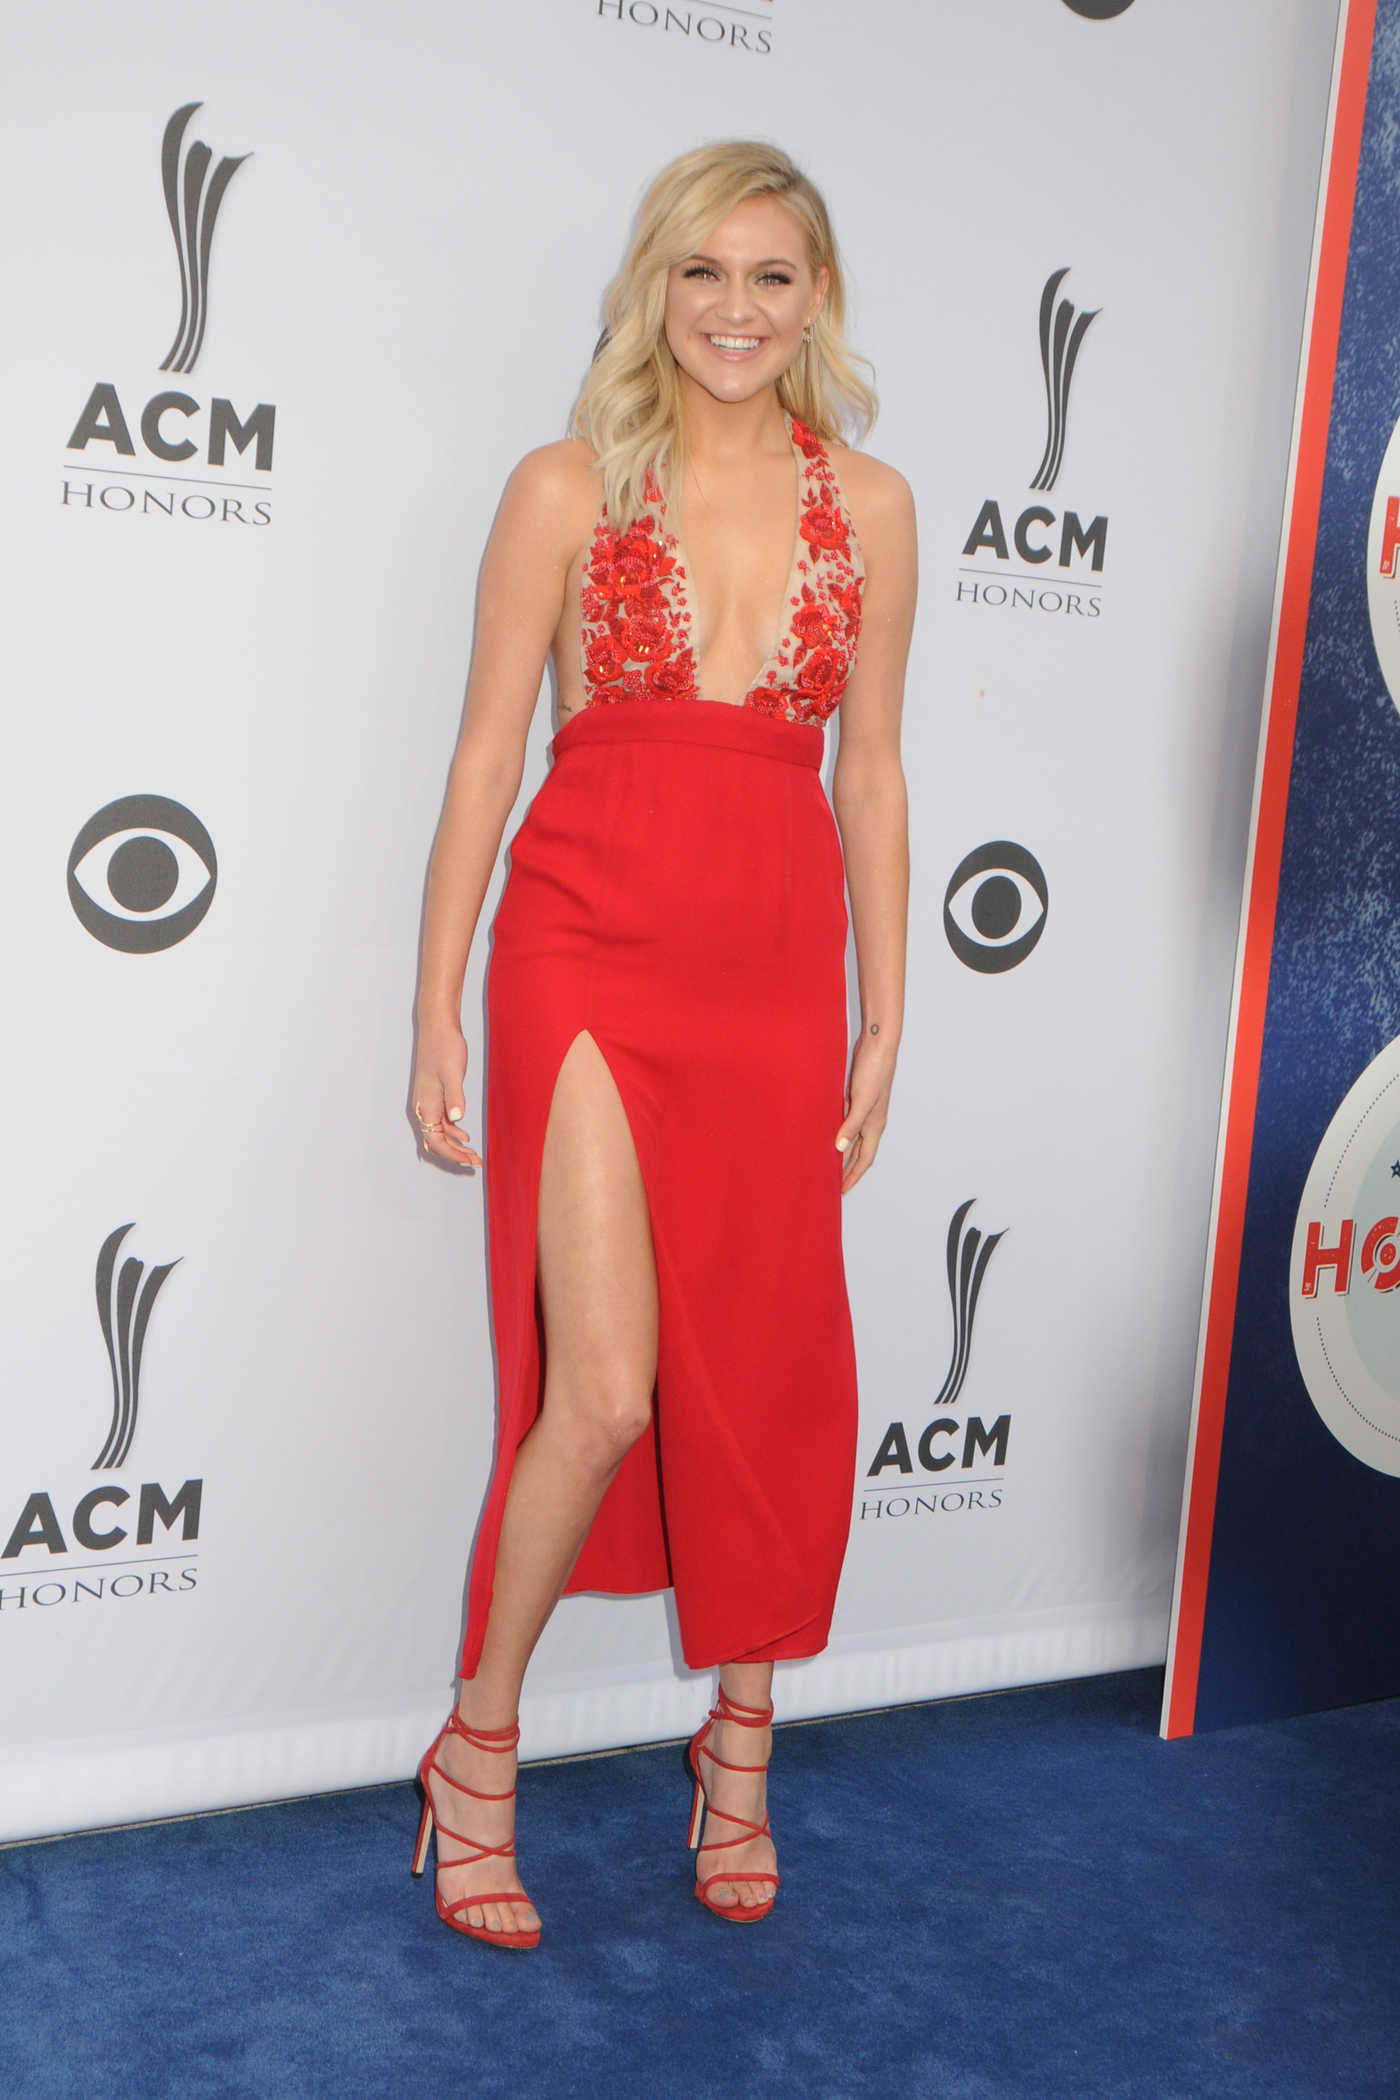 Kelsea Ballerini at the 11th Annual ACM Honors at the Ryman Auditorium in Nashville 08/23/2017